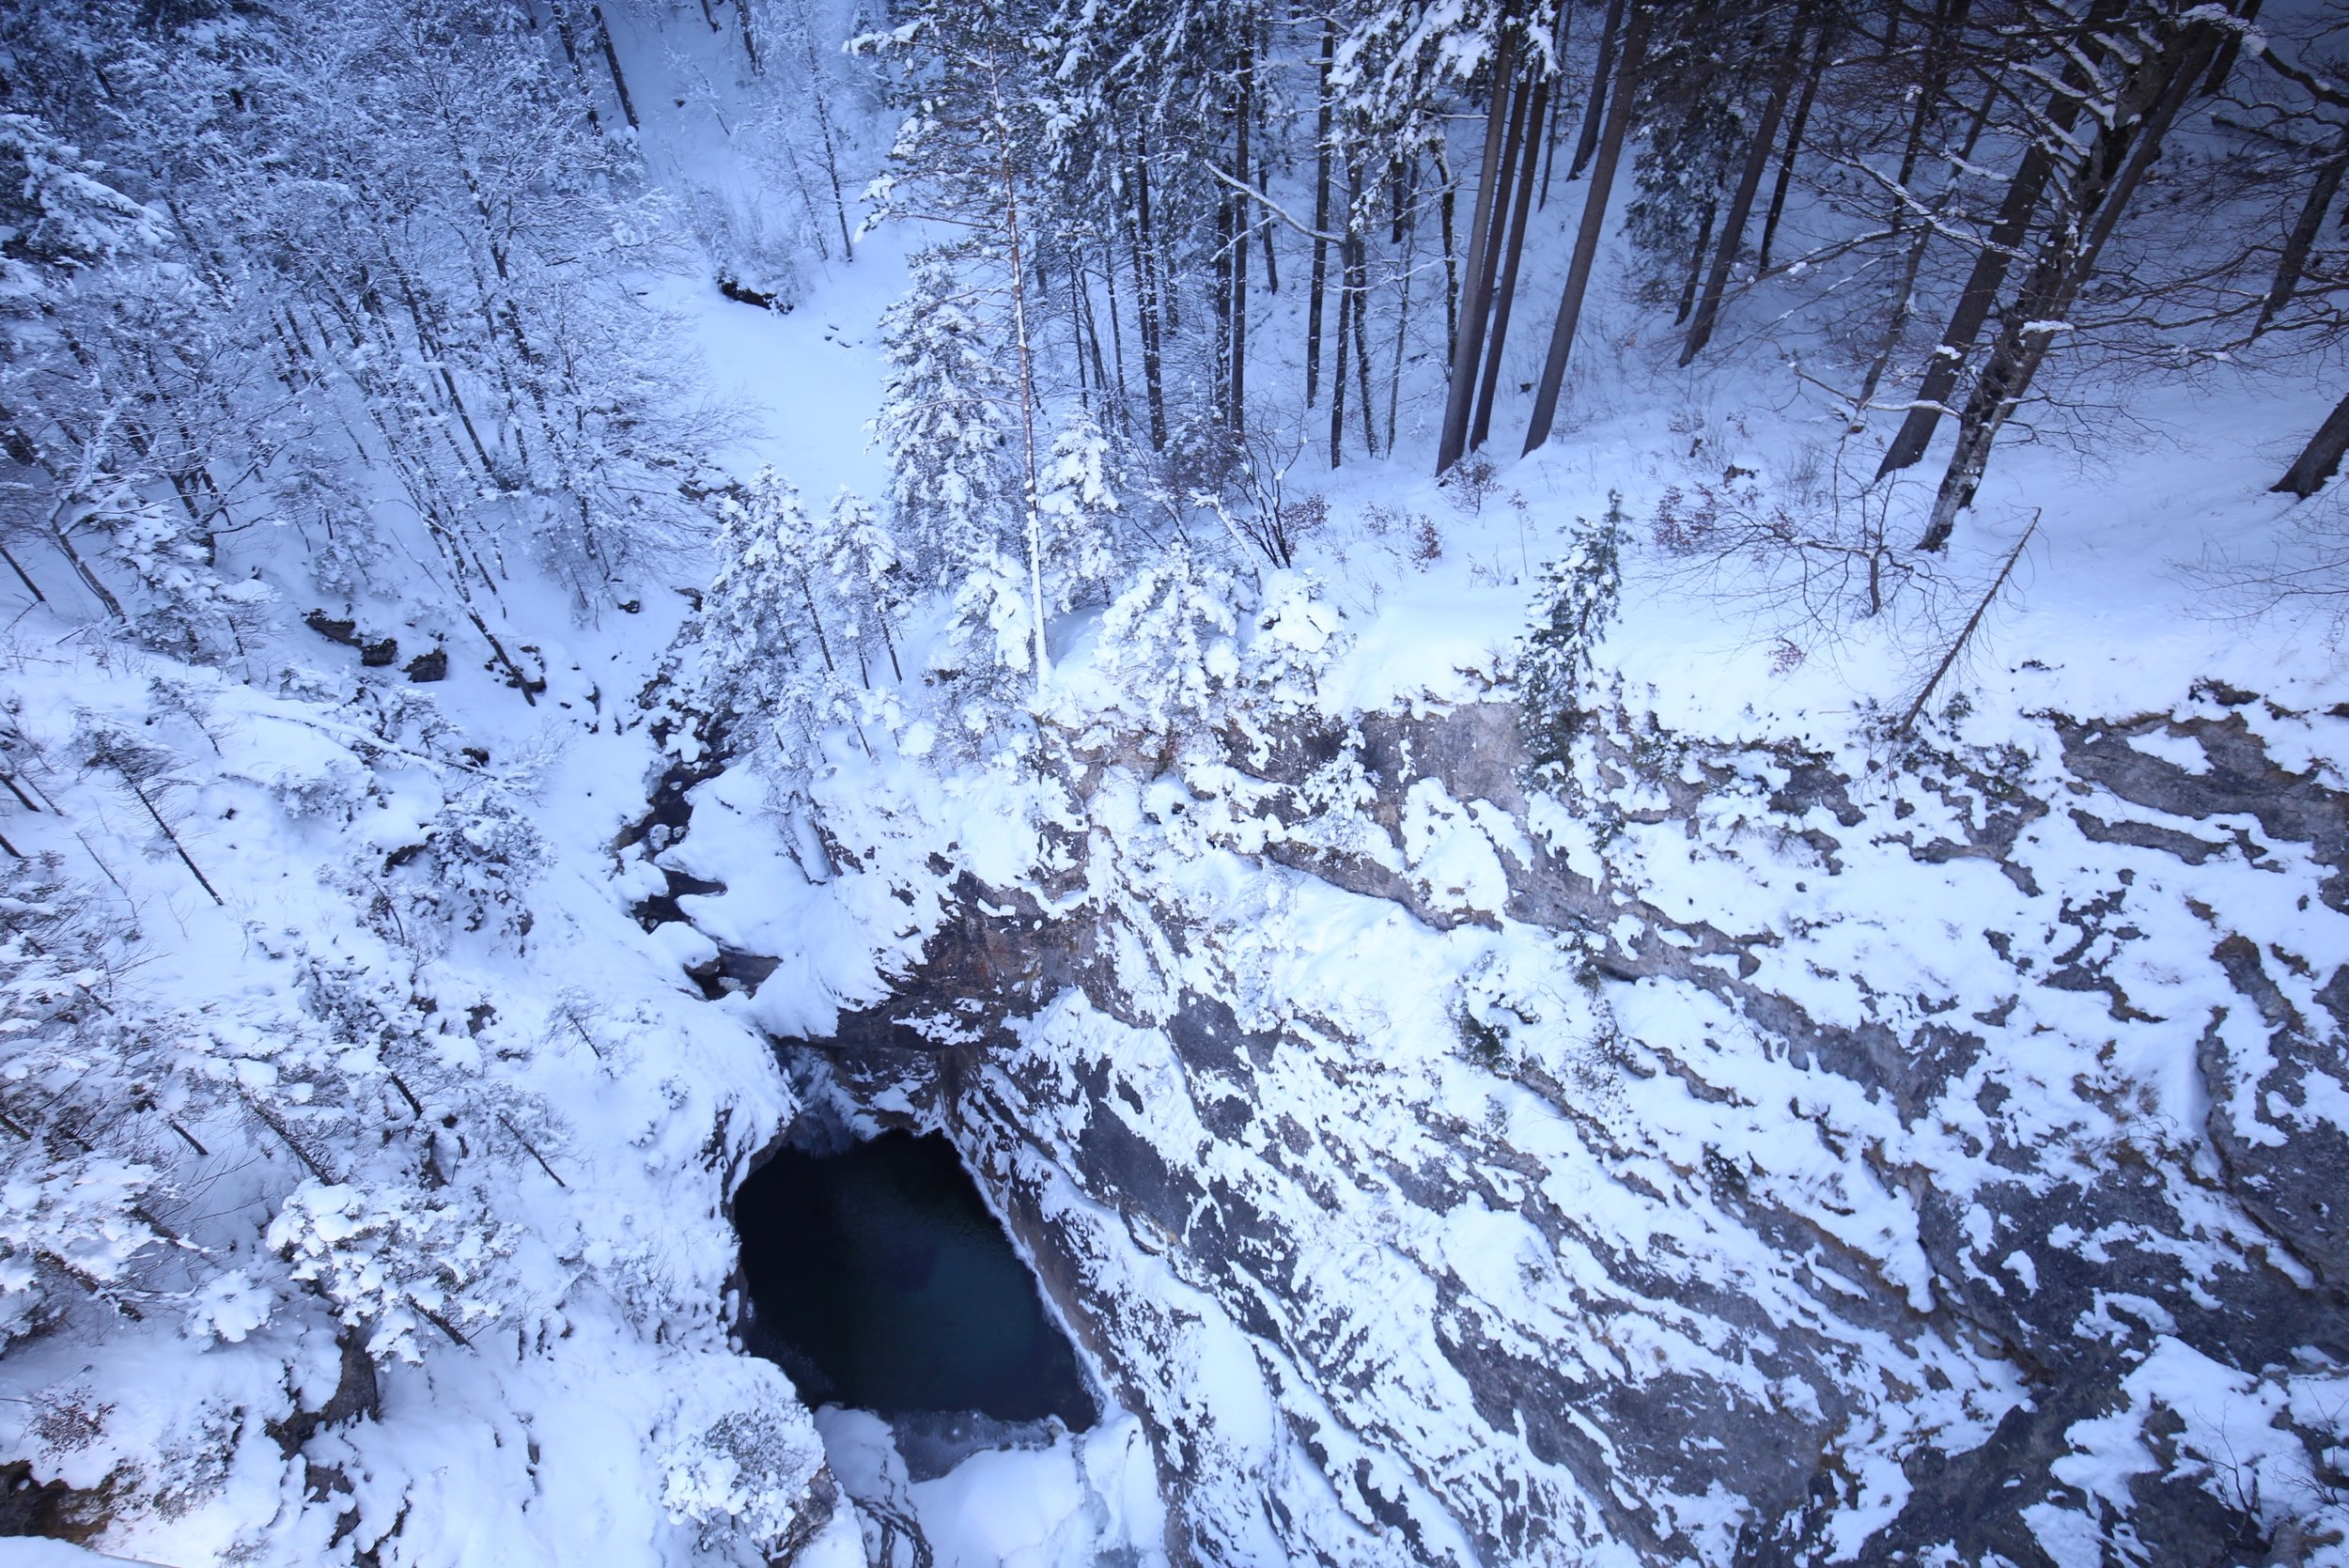 A blue pool sits at the bottom of a snowy crevasse.